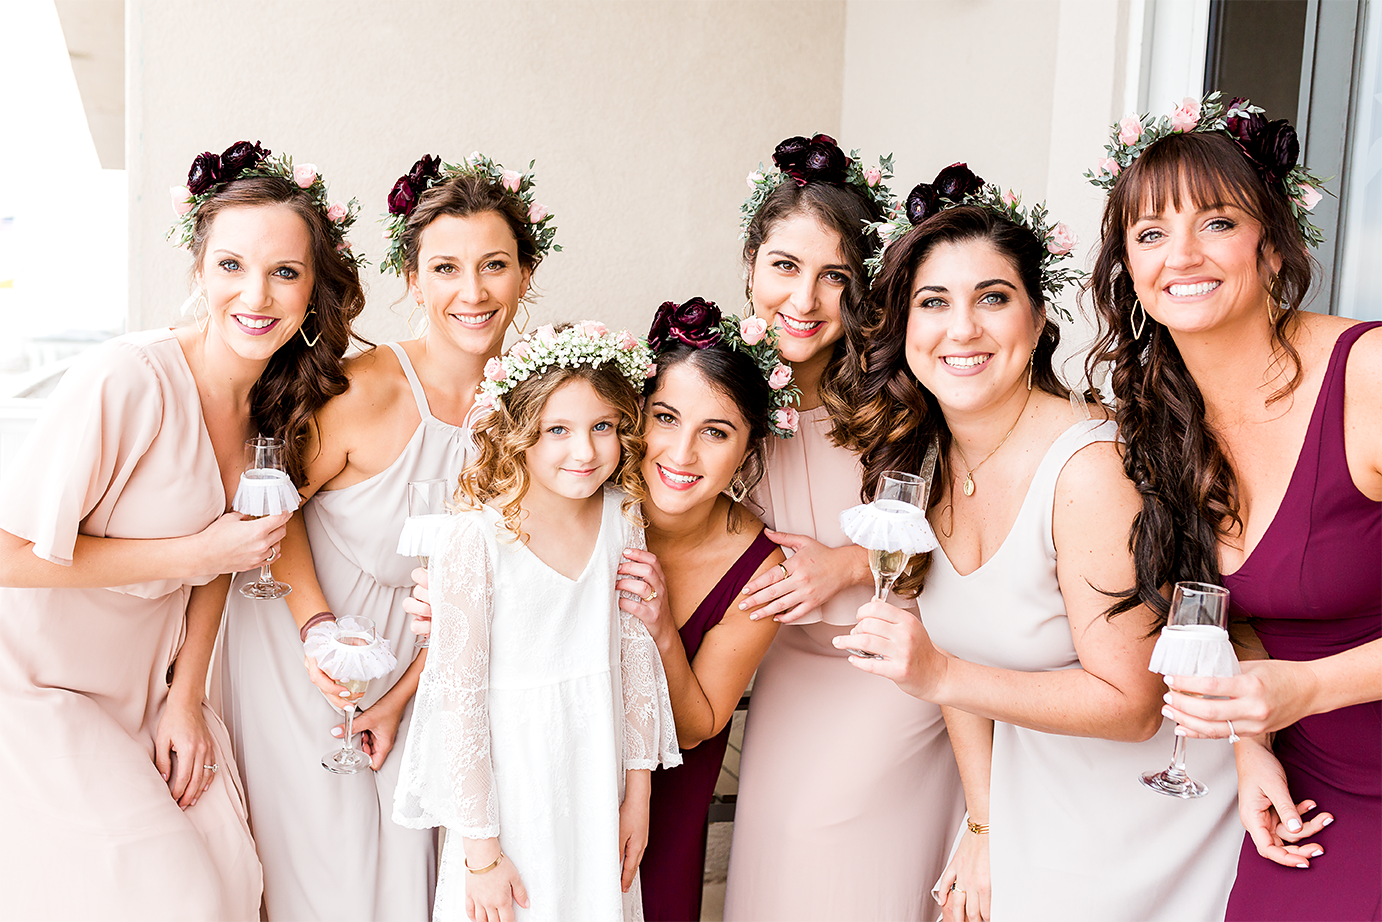 bridal party getting ready for the wedding